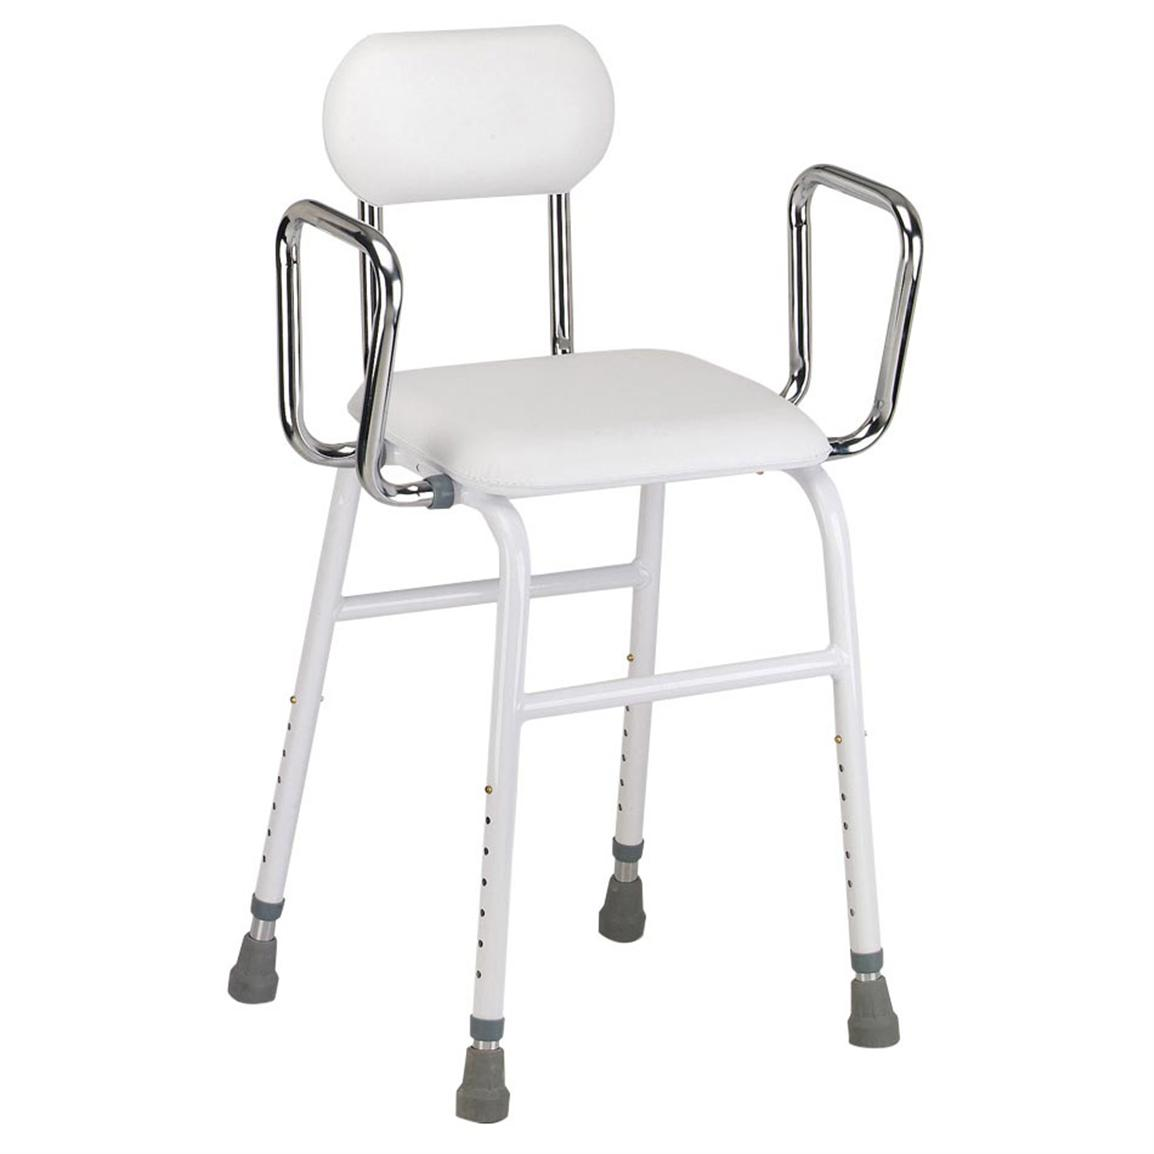 All Purpose Stool with Adjustable Arms